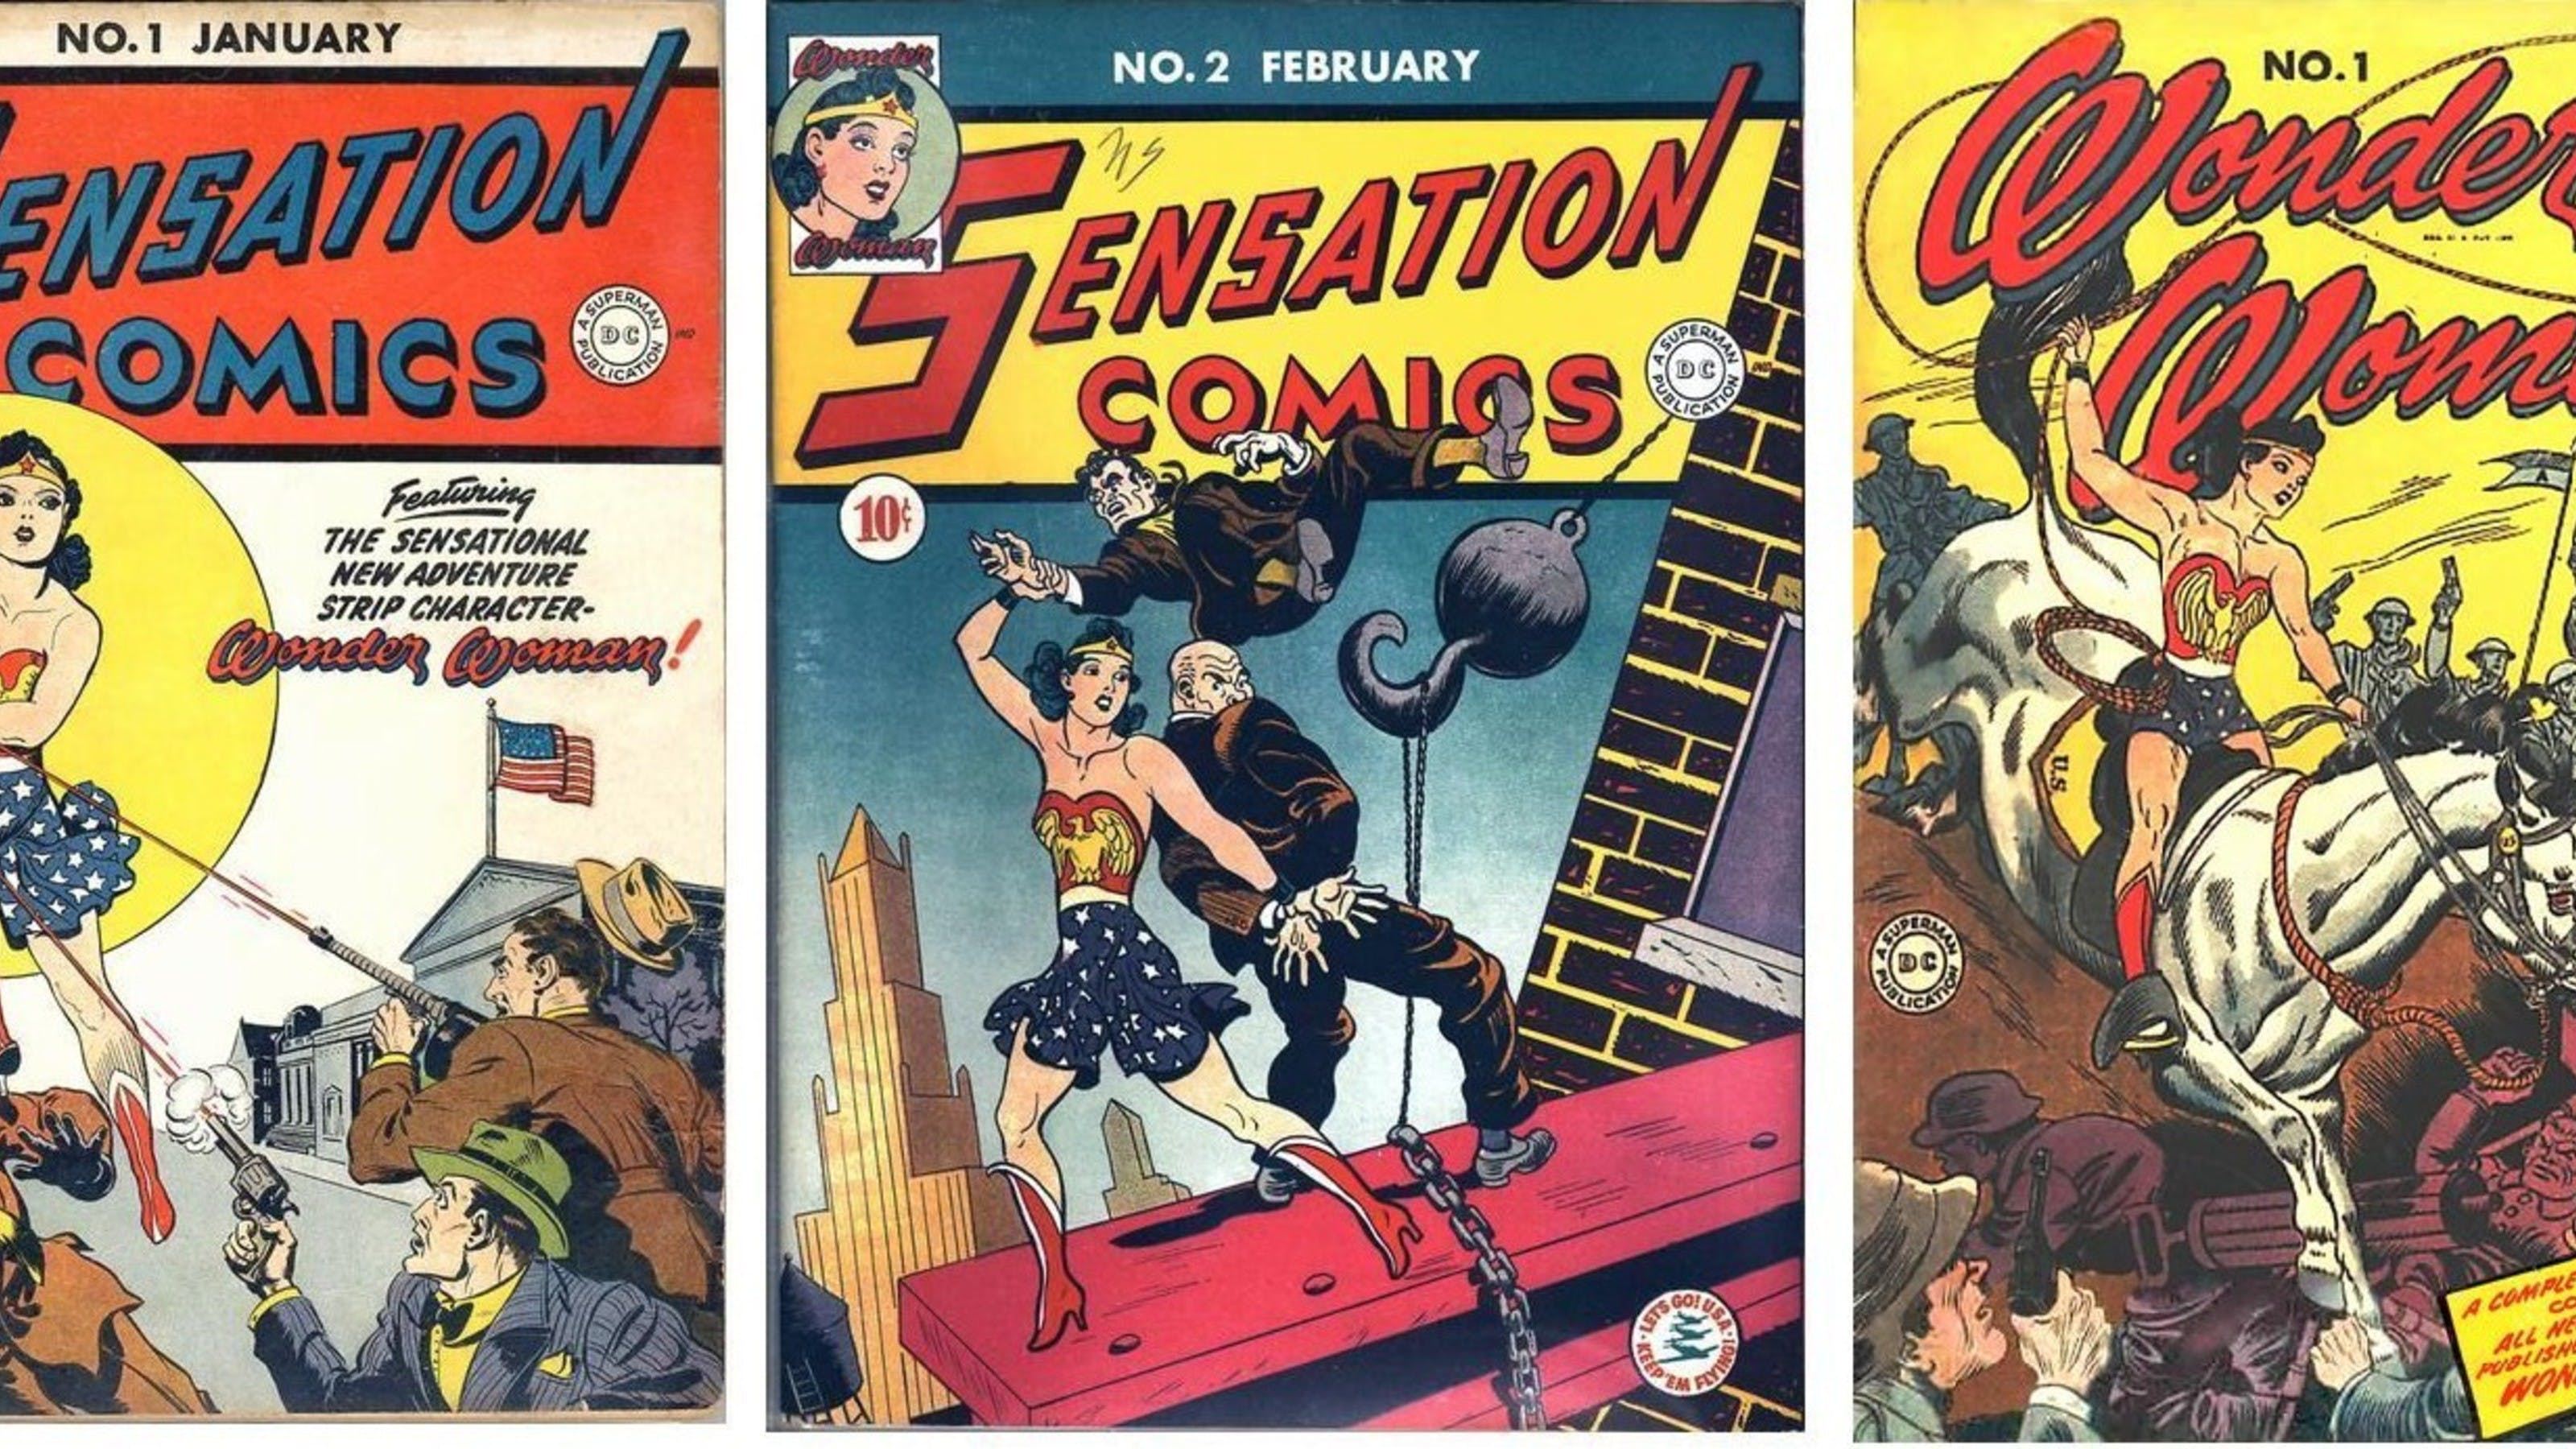 American Erotic Comics sex in graphic novels | wellcome collection